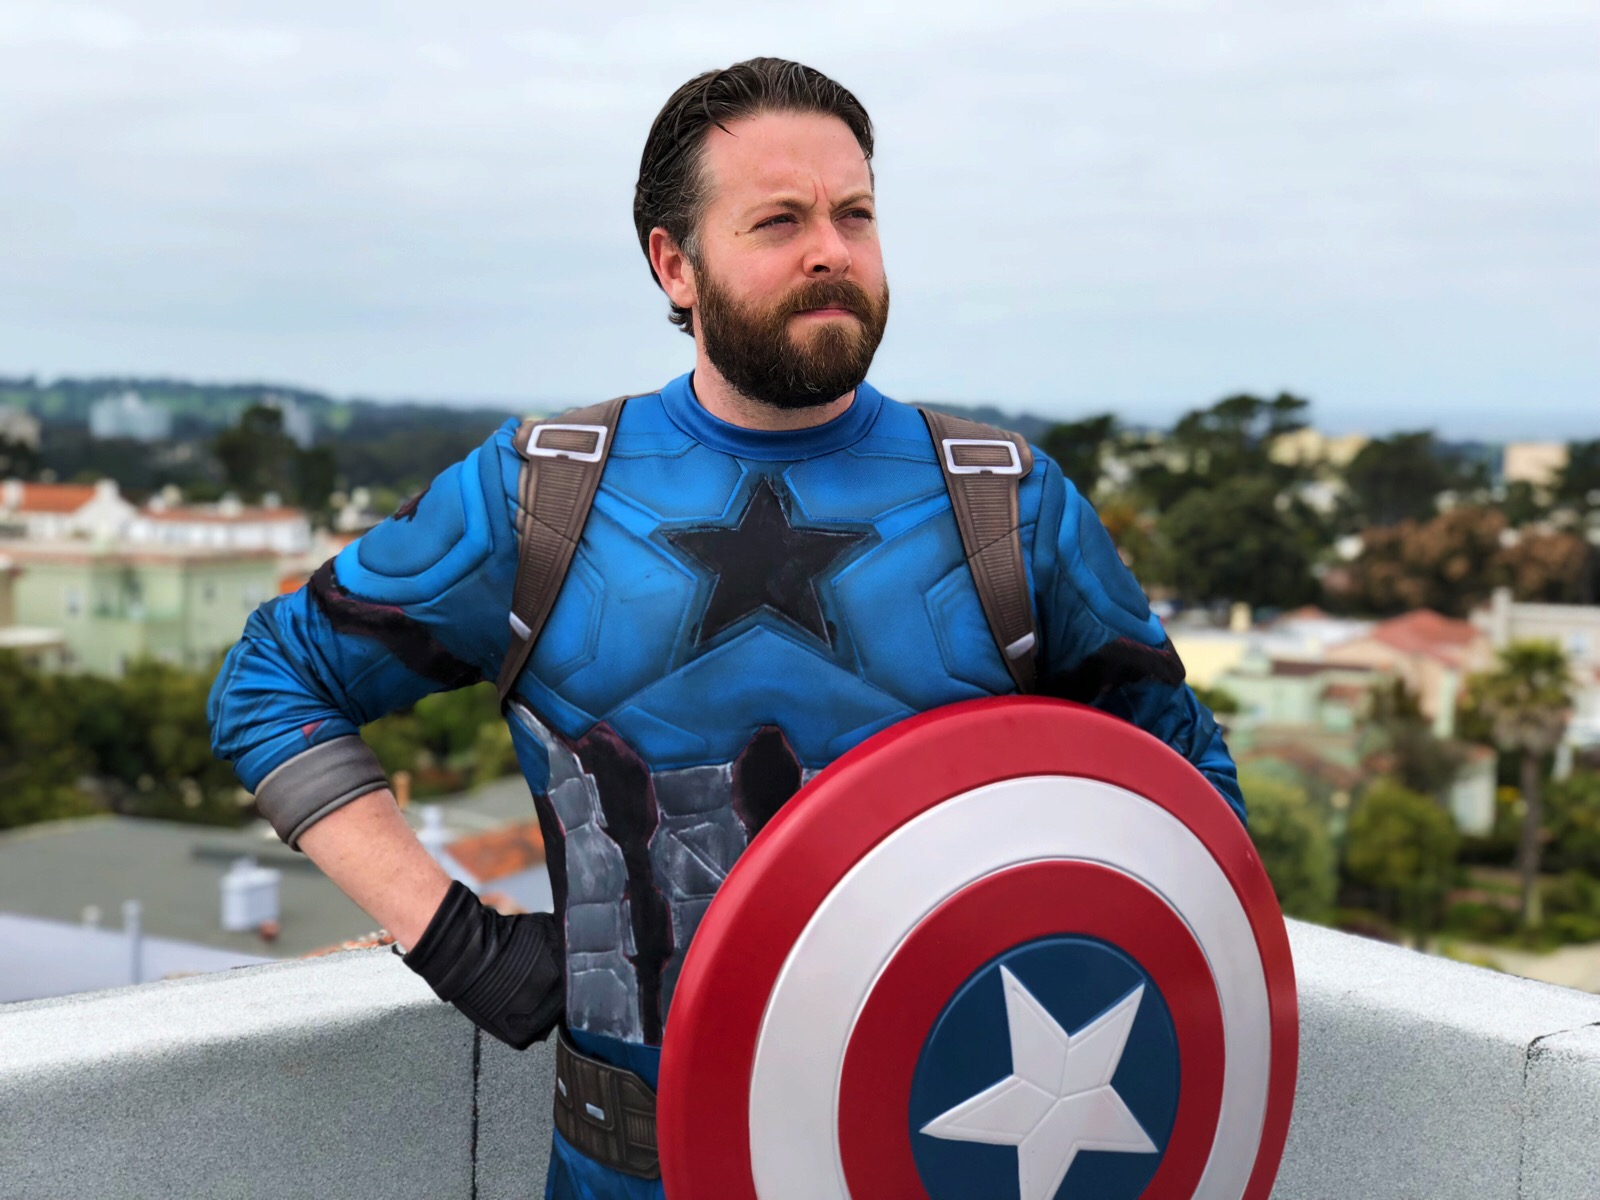 Picture of Greg Miller in a Captain America uniform